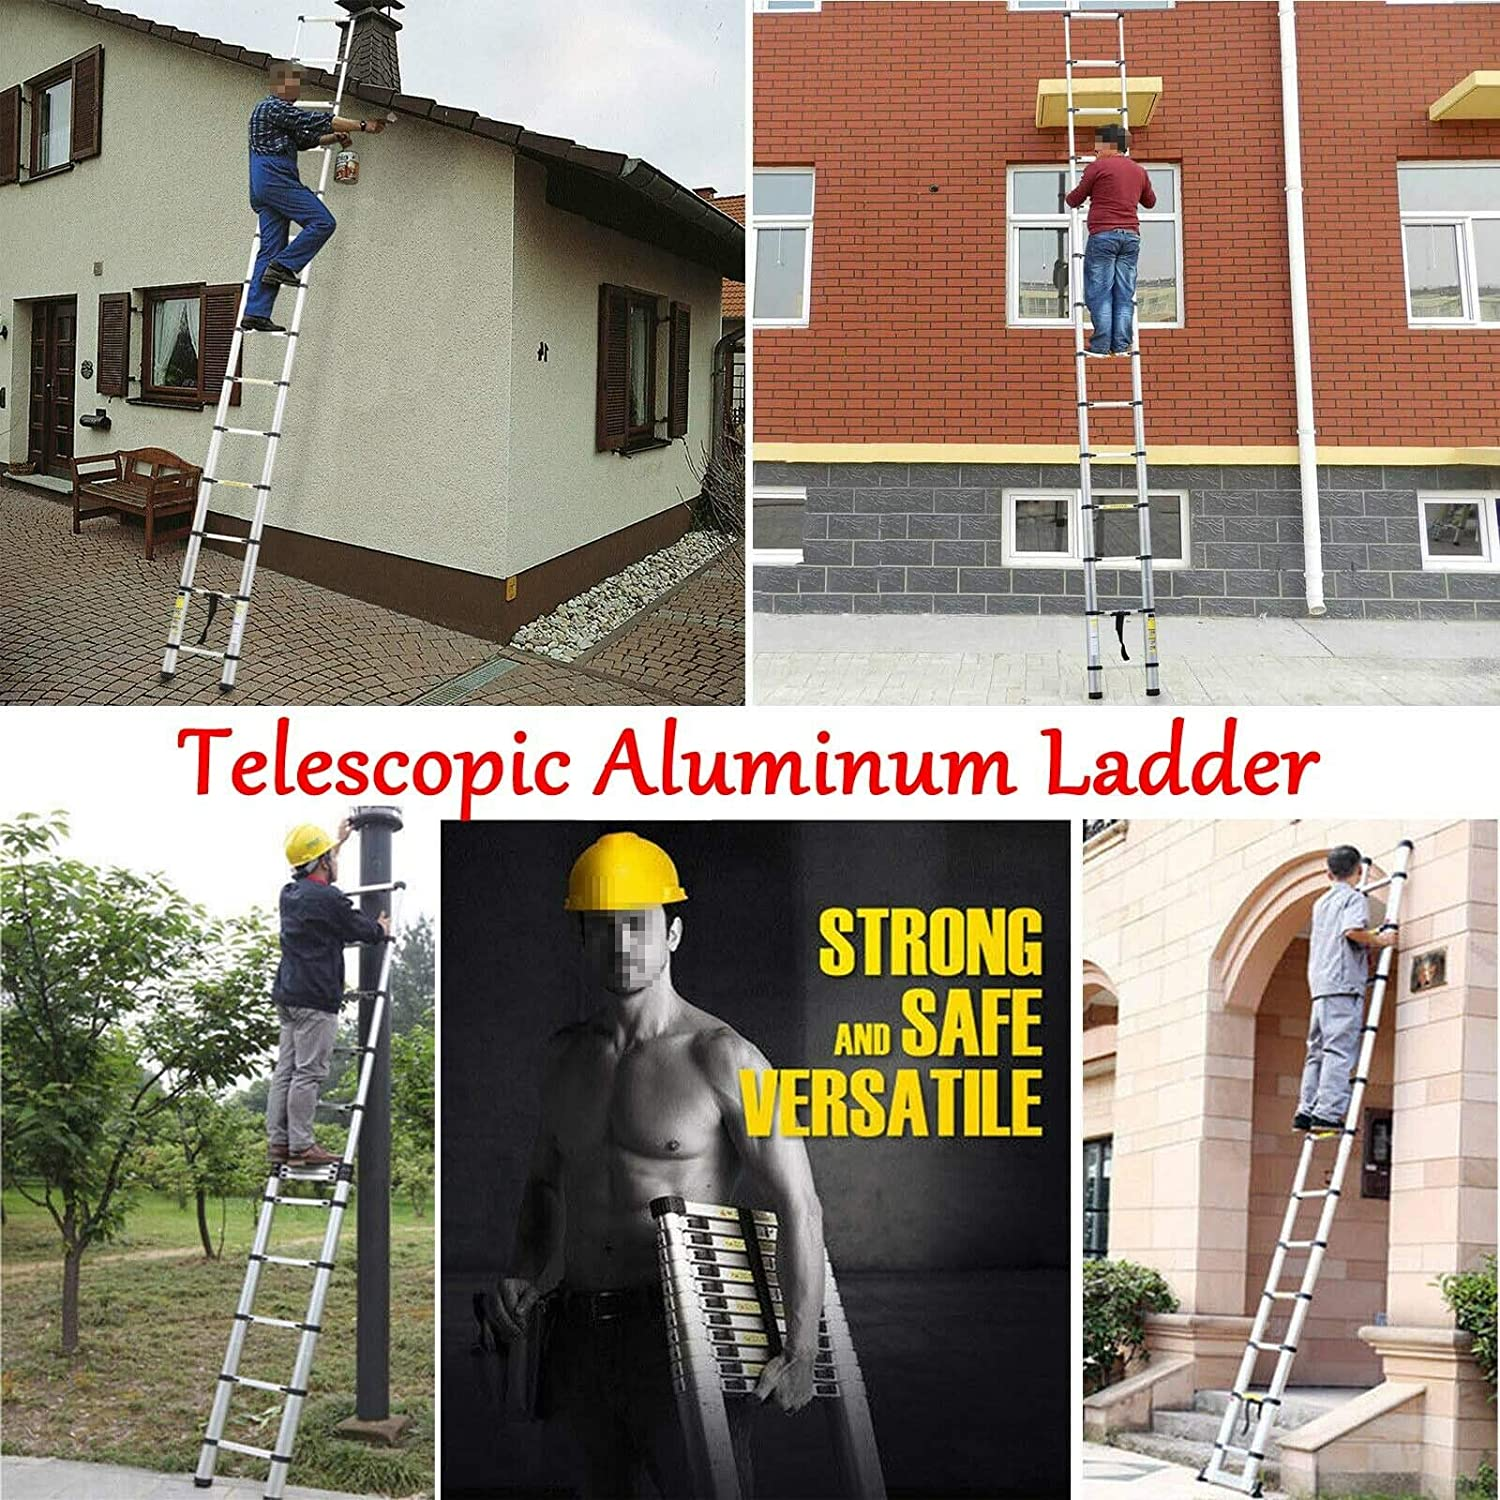 2.5m+2.5m Telescopic Ladder Multi-Purpose Aluminum Ladder Heavy Duty Stable A Frame /& Straight Ladder Foldable Extendable Max Load 150kg 330lb Anti-Slip for Indoor Outdoor DIY Tools